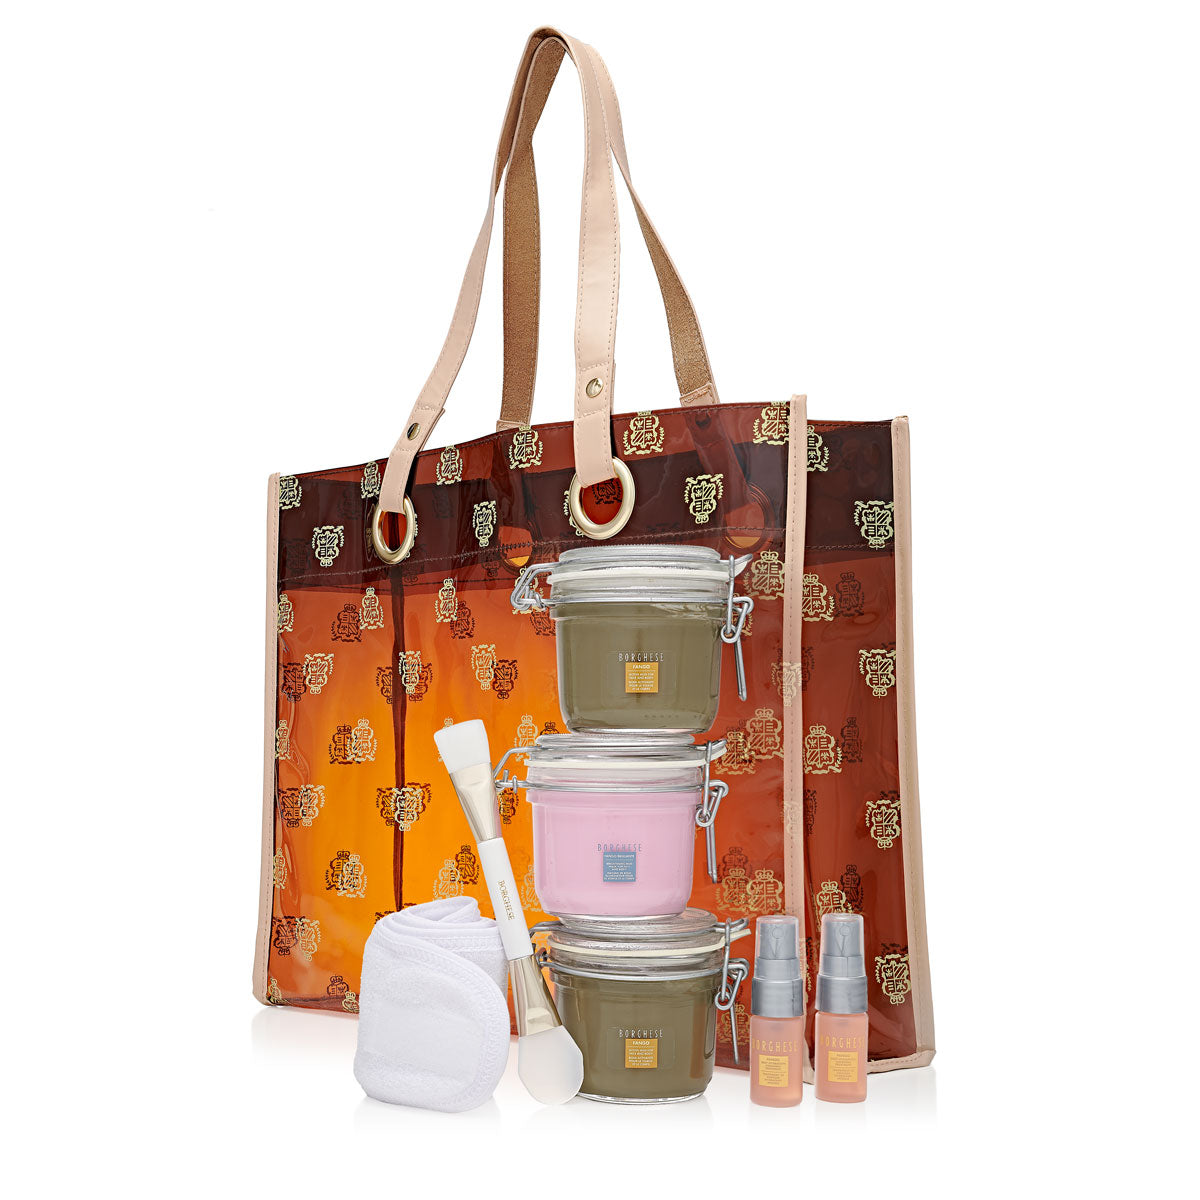 Borghese Mask, Hydration & Tote Bag Set